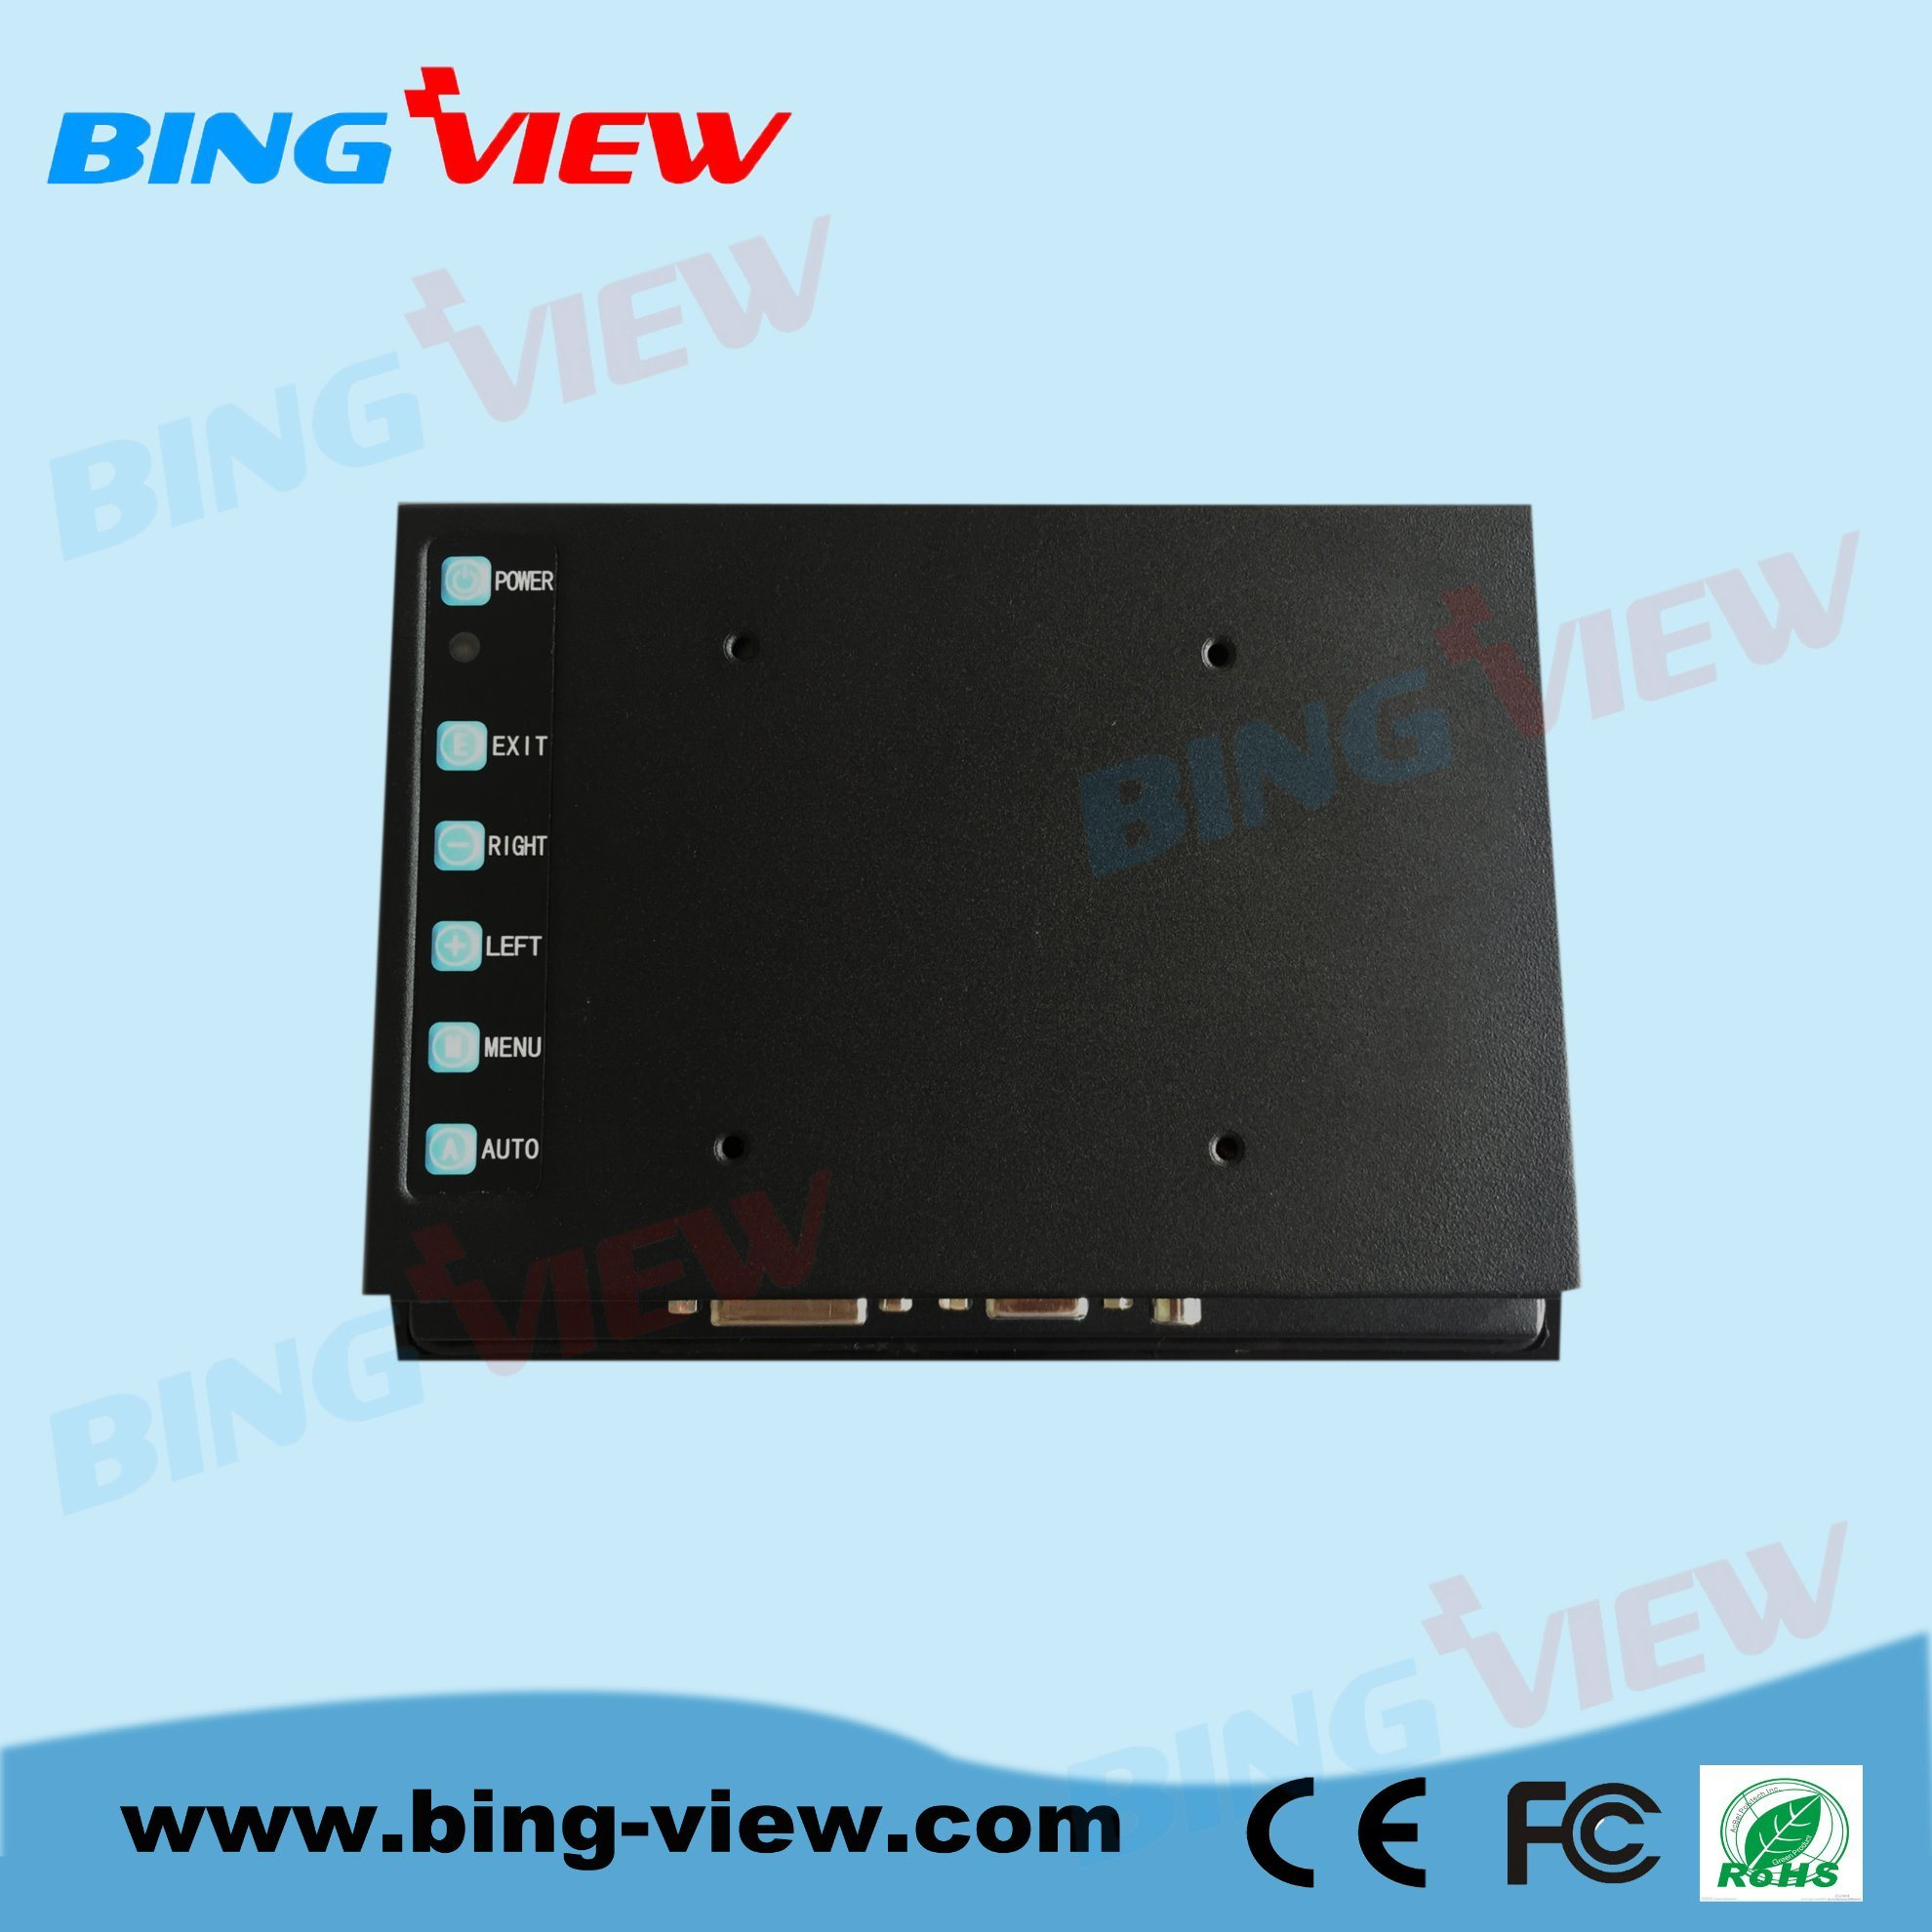 """12.1""""Multiple Touch Screen Monitor with Pcap Technology for Industrial Automation Machine"""